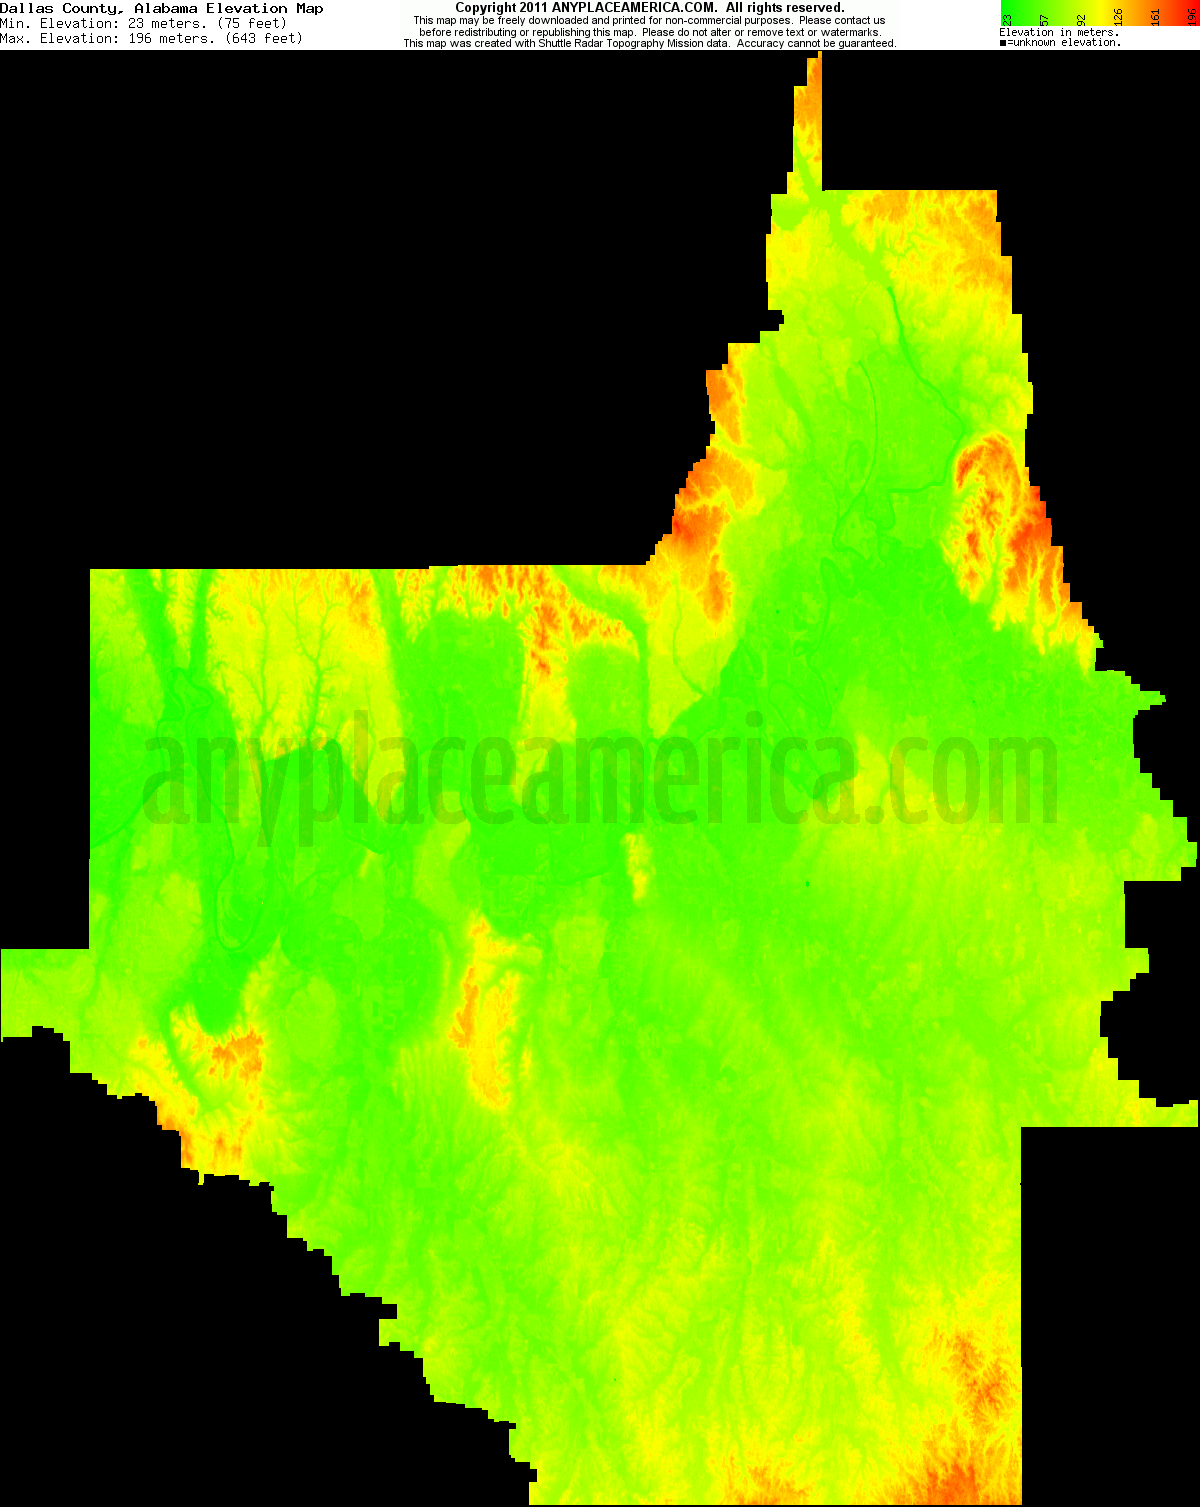 Free Dallas County Alabama Topo Maps Elevations